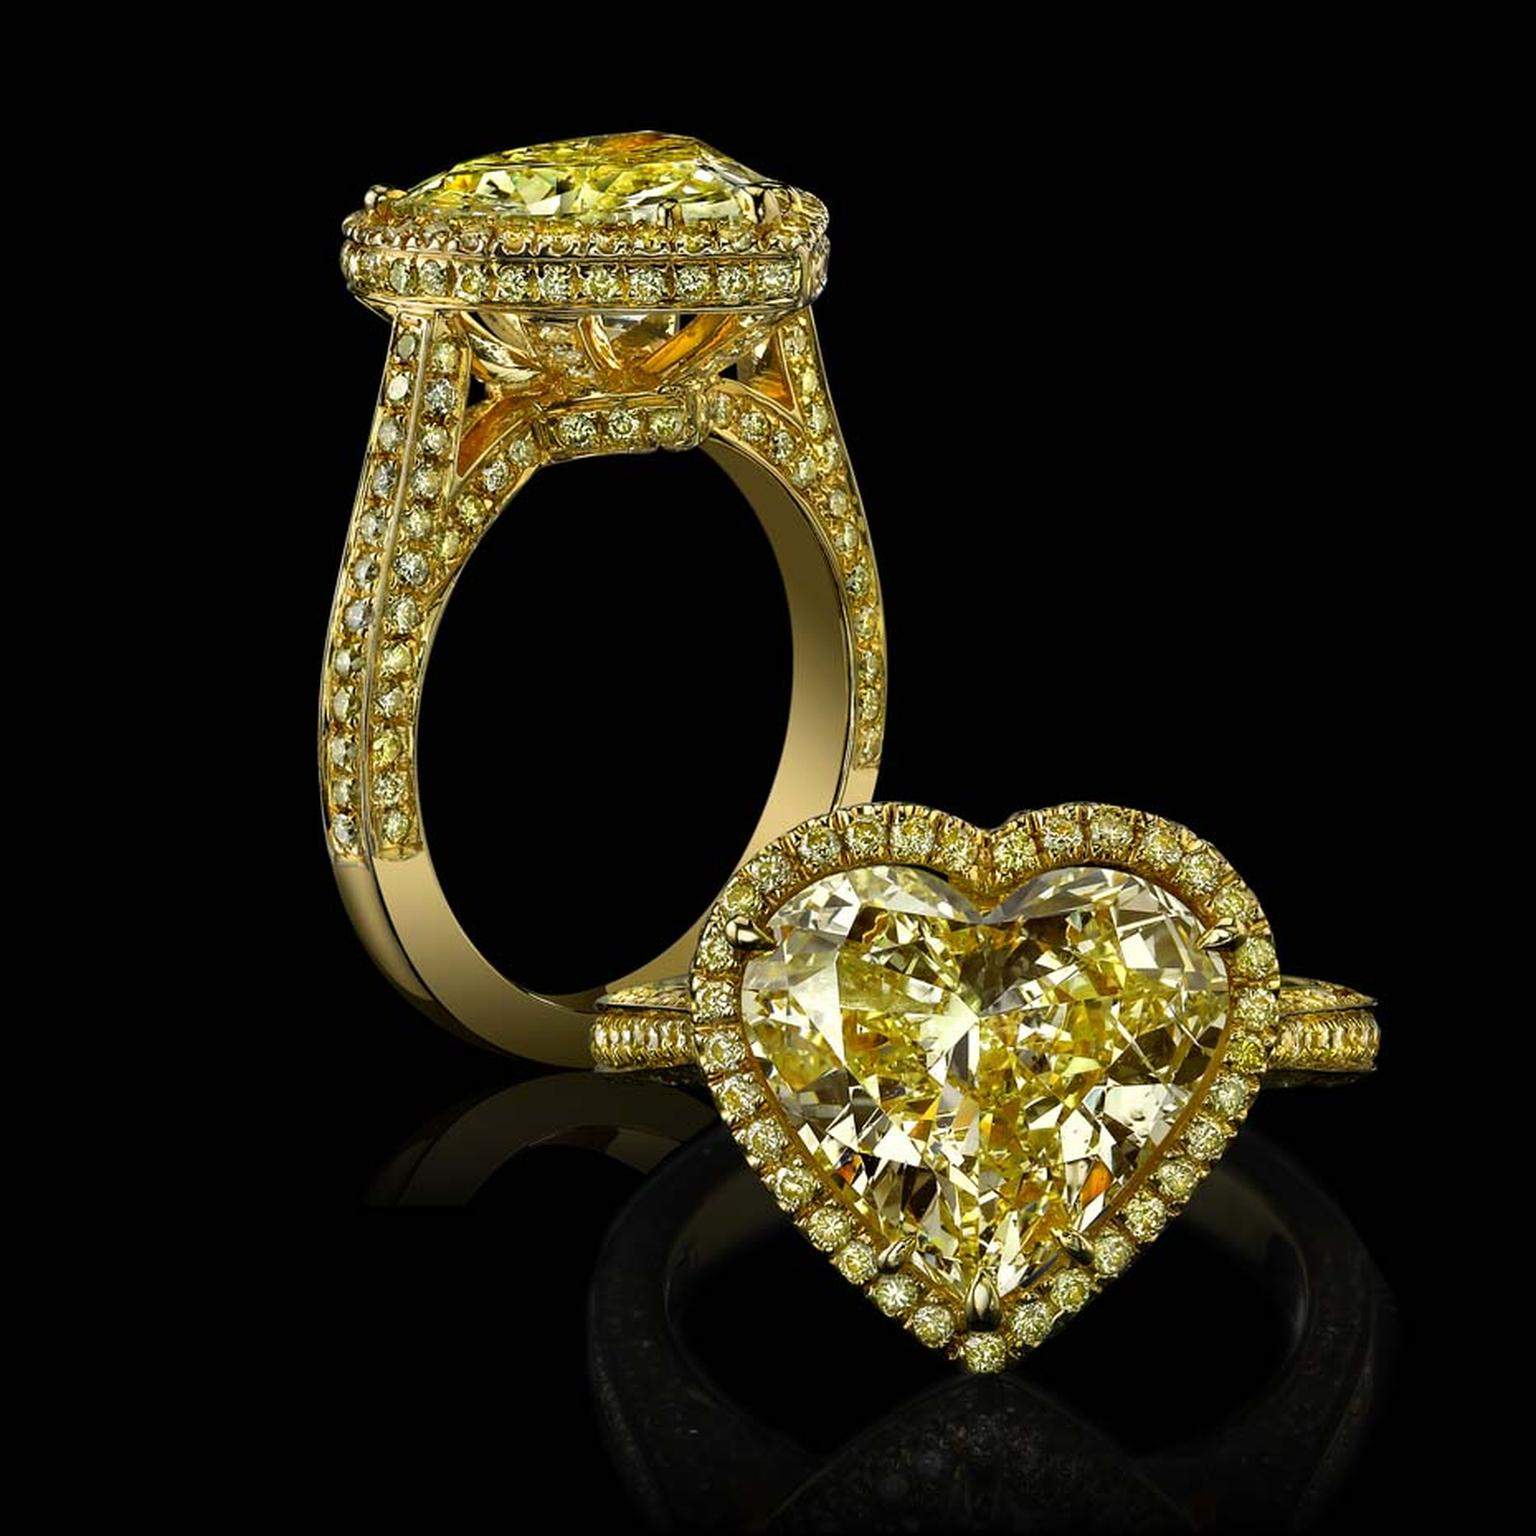 Robert Procop's heart-shaped yellow diamond engagement ring.